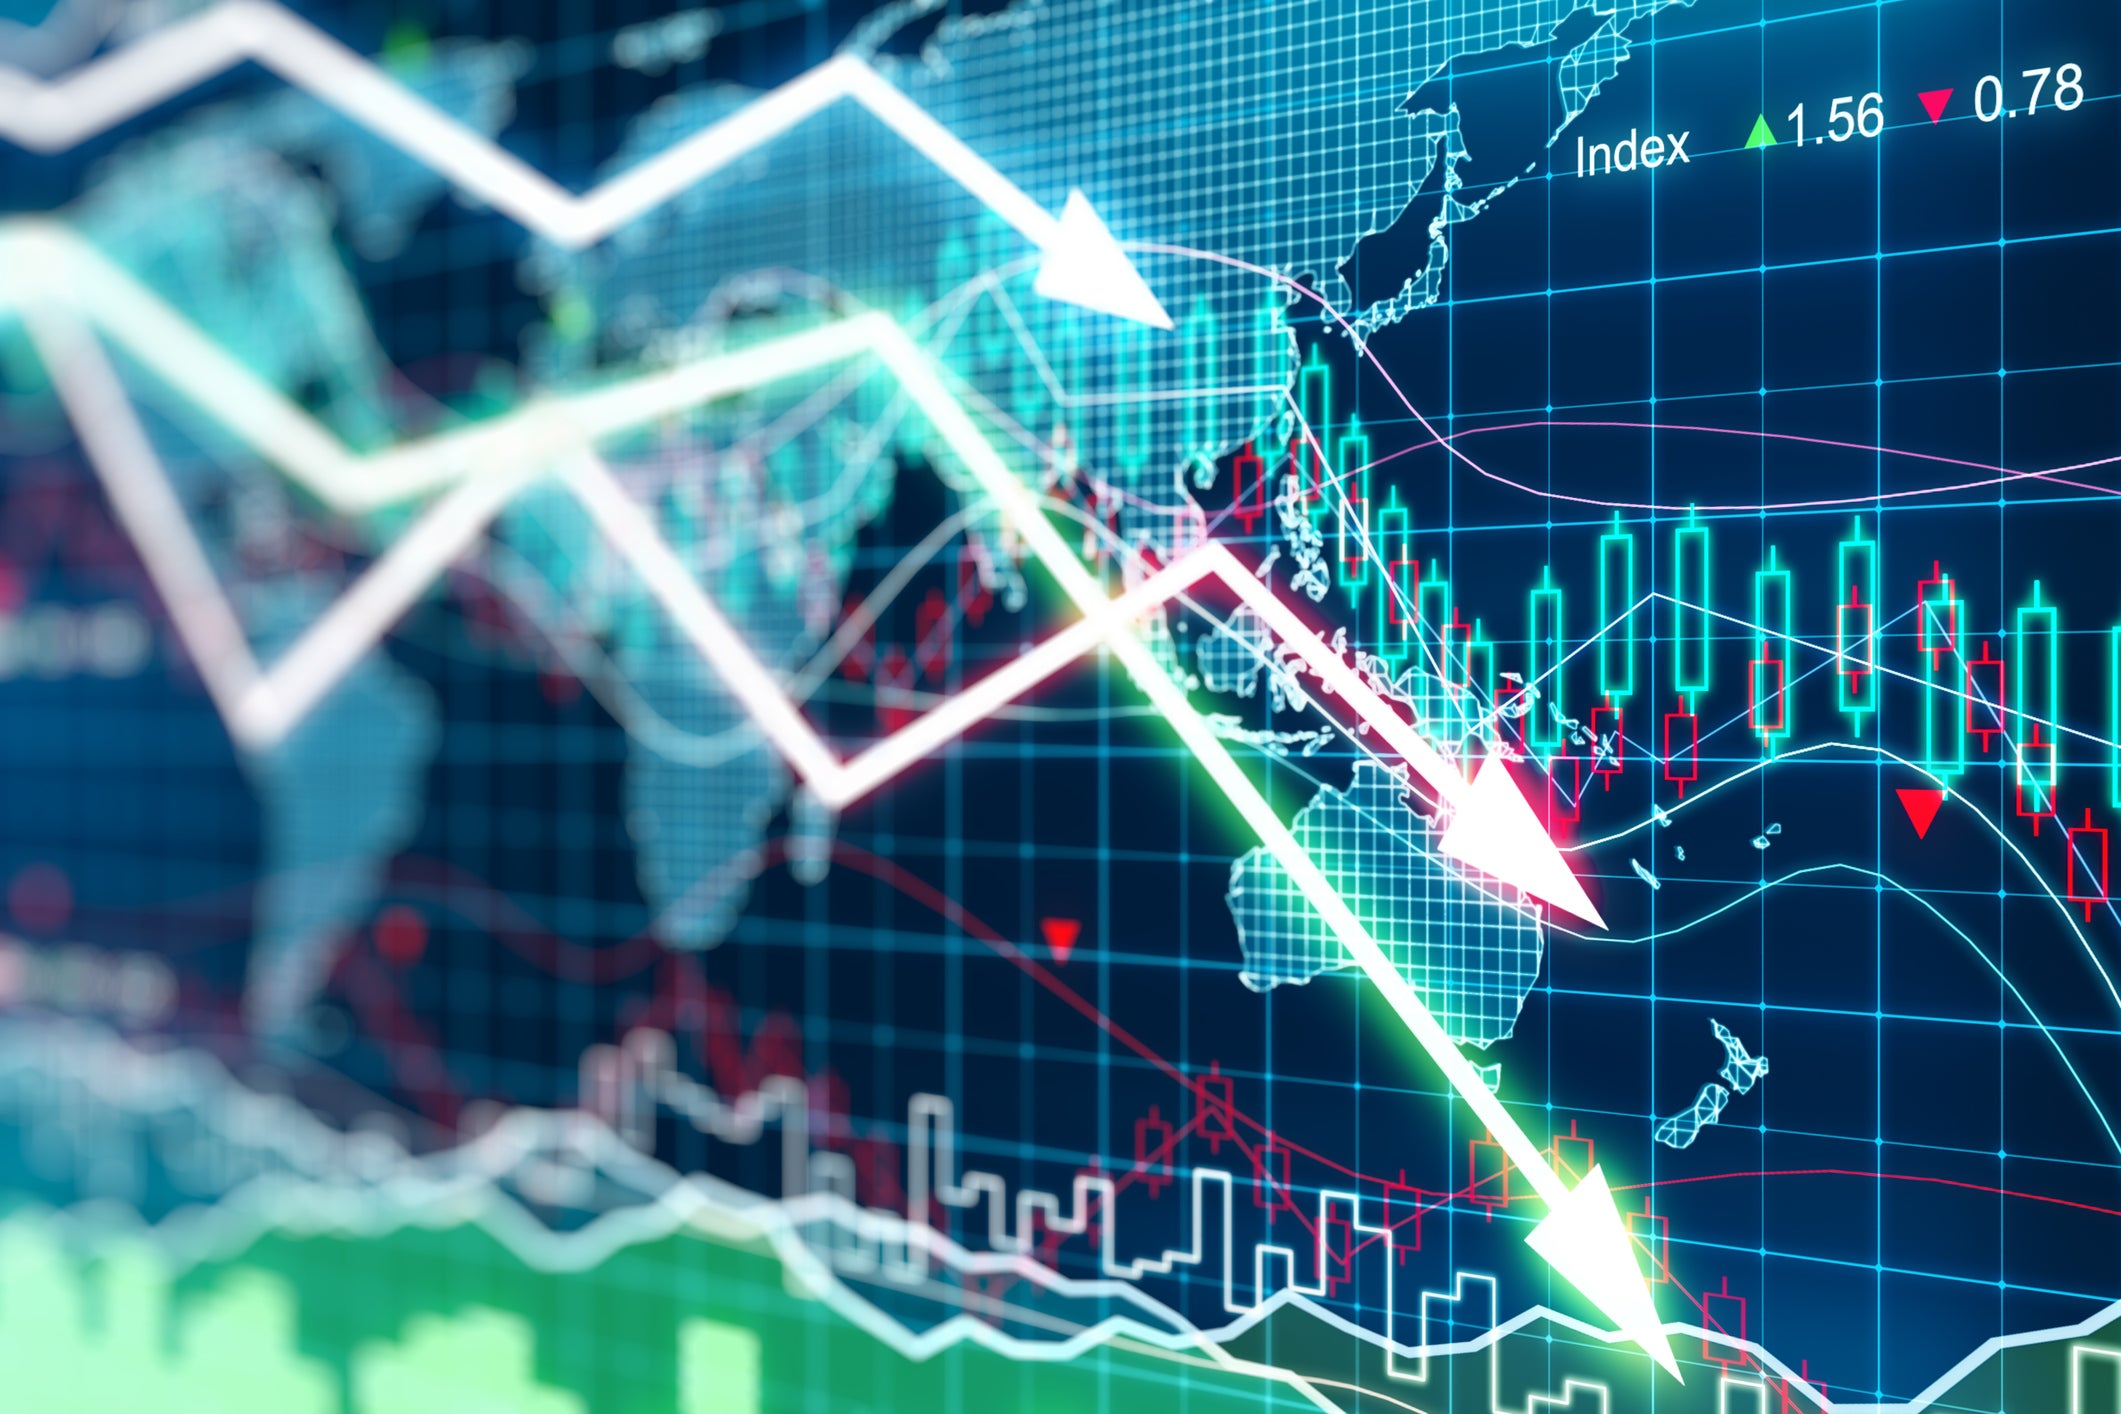 Stock charts trending downward with a map in the background